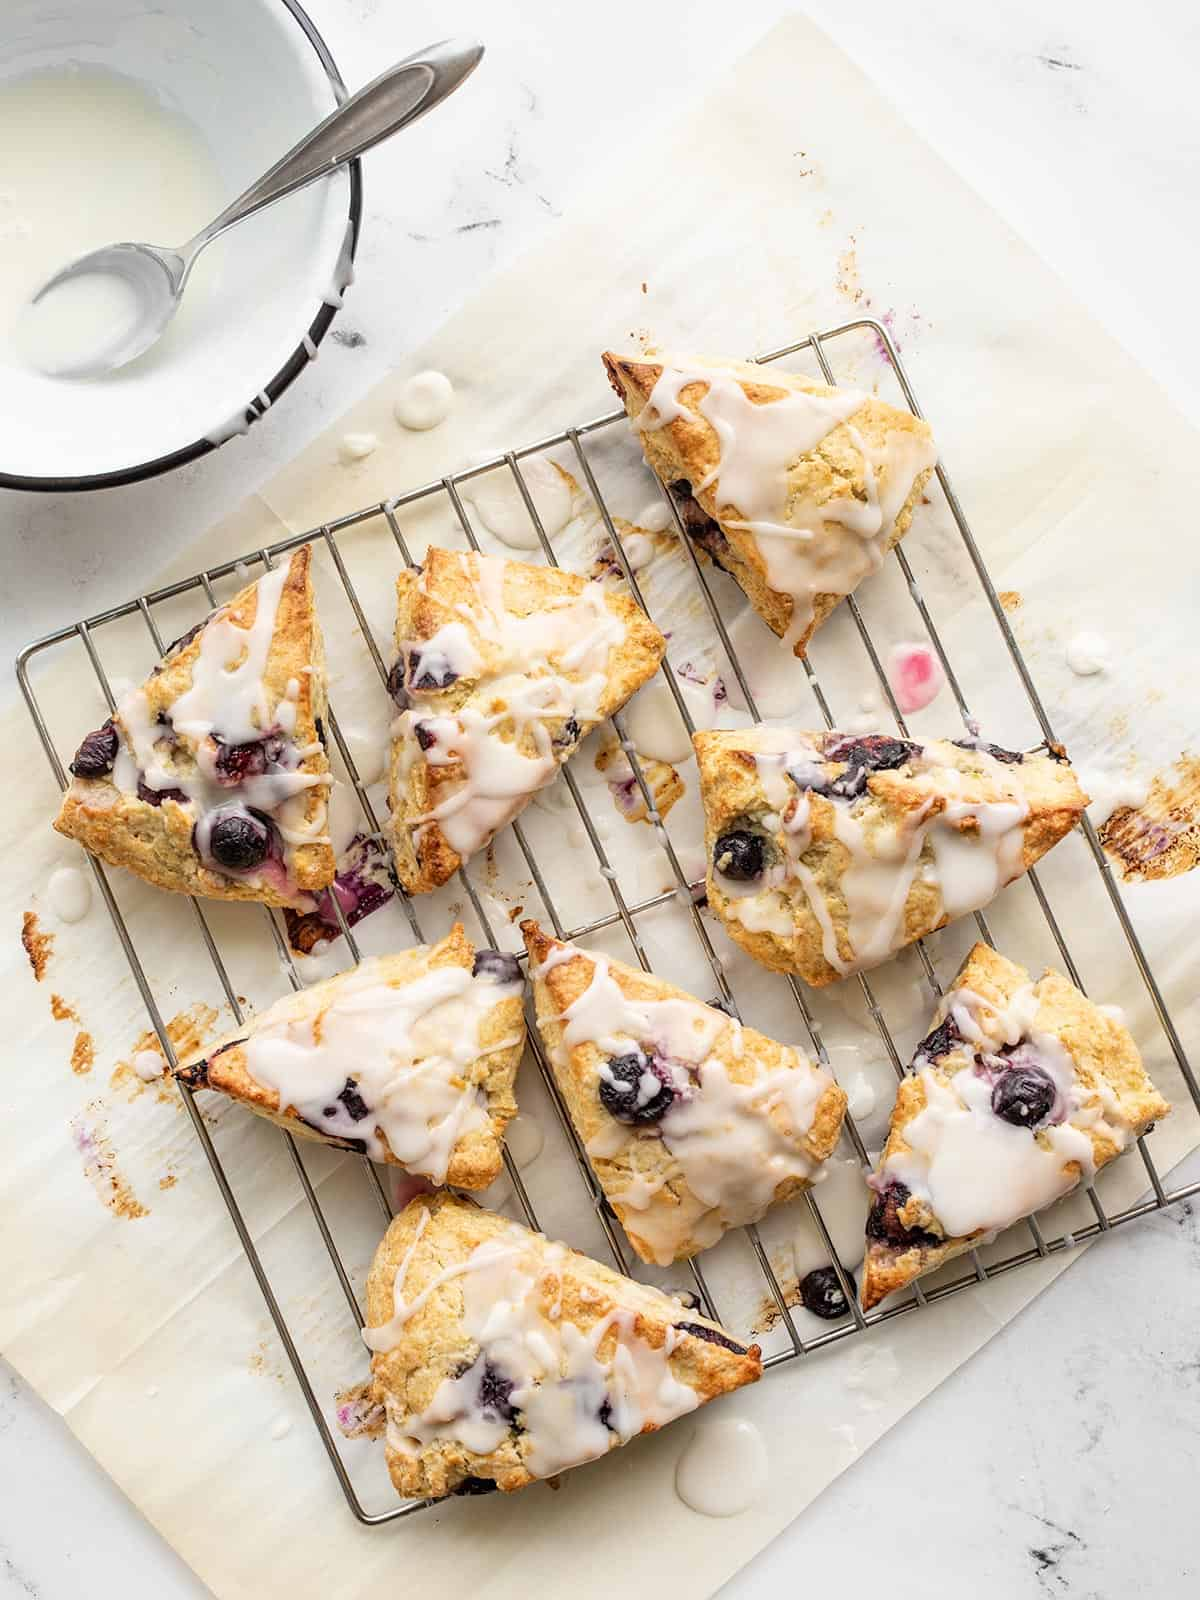 Lemon blueberry scones on a wire cooling rack drizzled with glaze